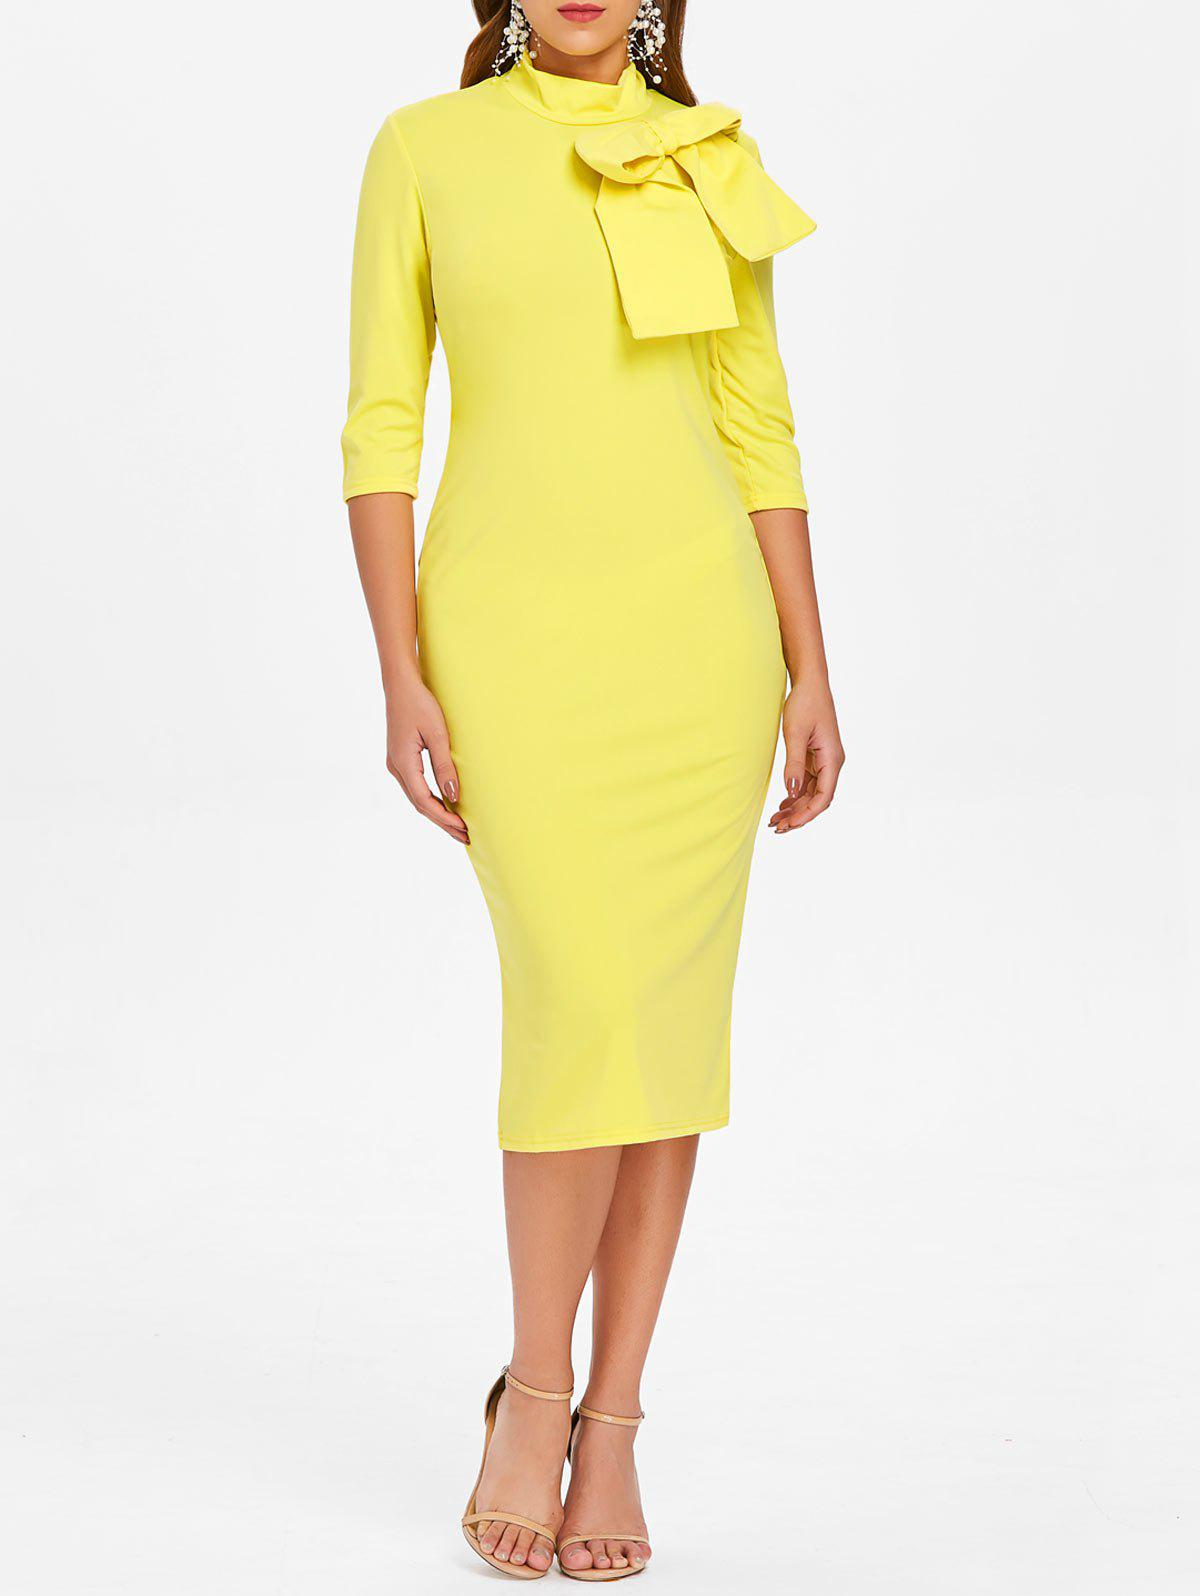 High Neck Bowknot Embellished Knee Length Dress - YELLOW 2XL